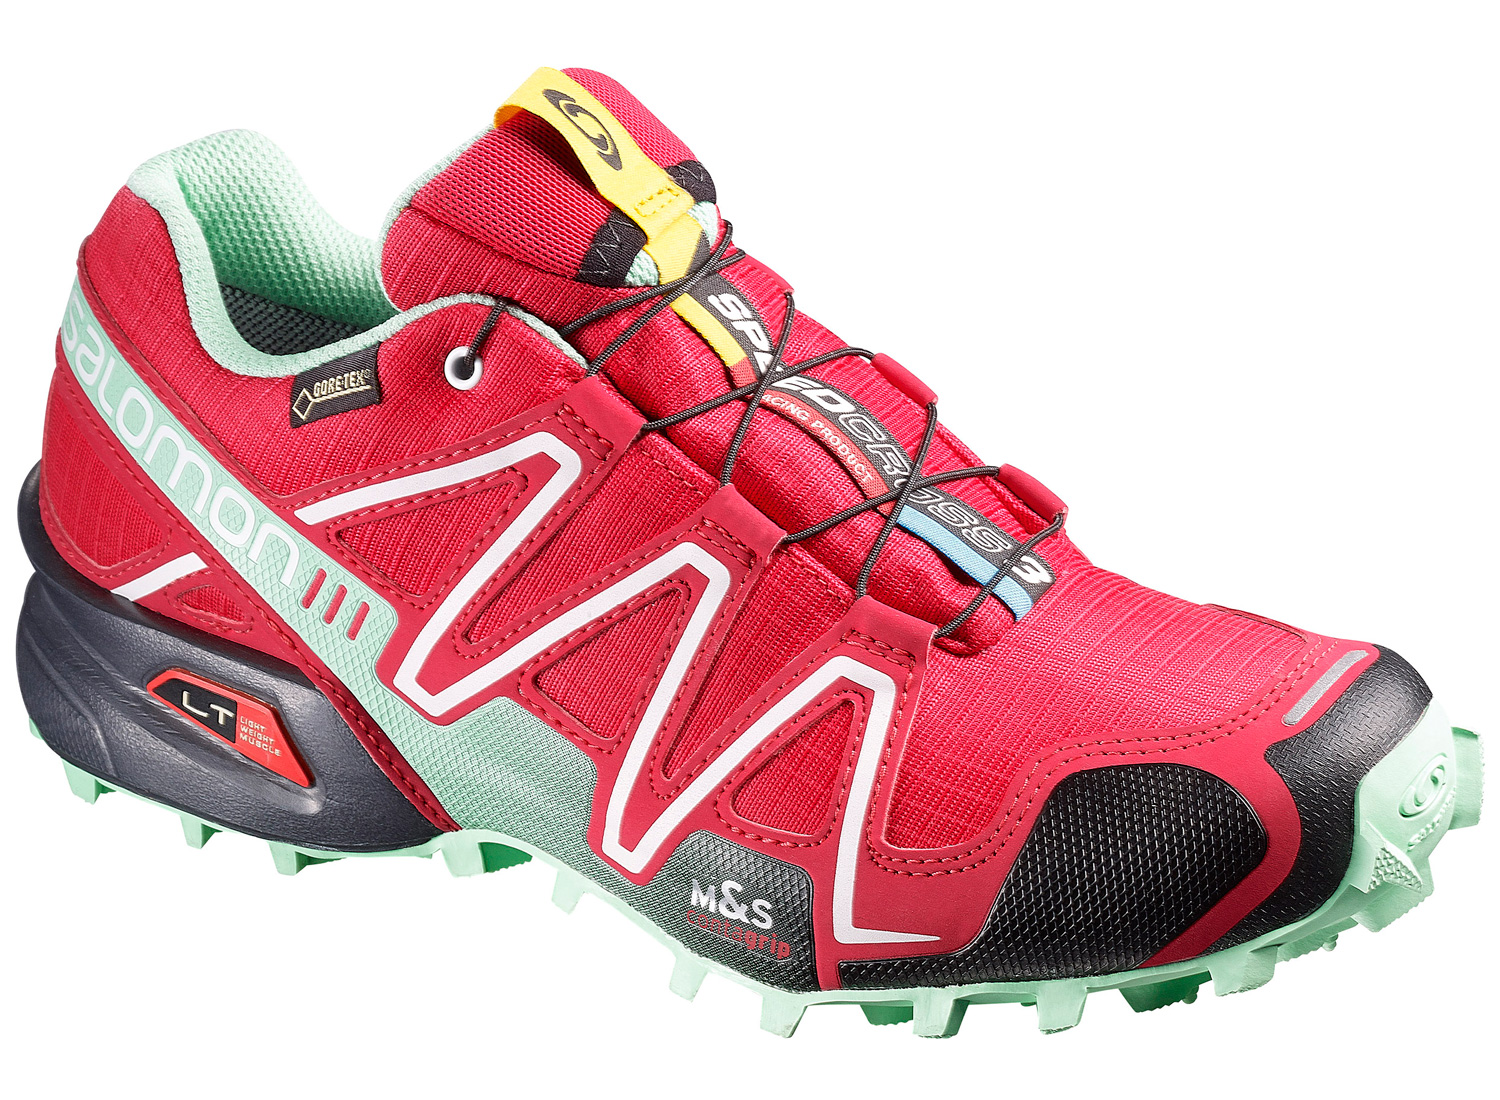 Salomon Speedcross 3 GTX 373219 37,3